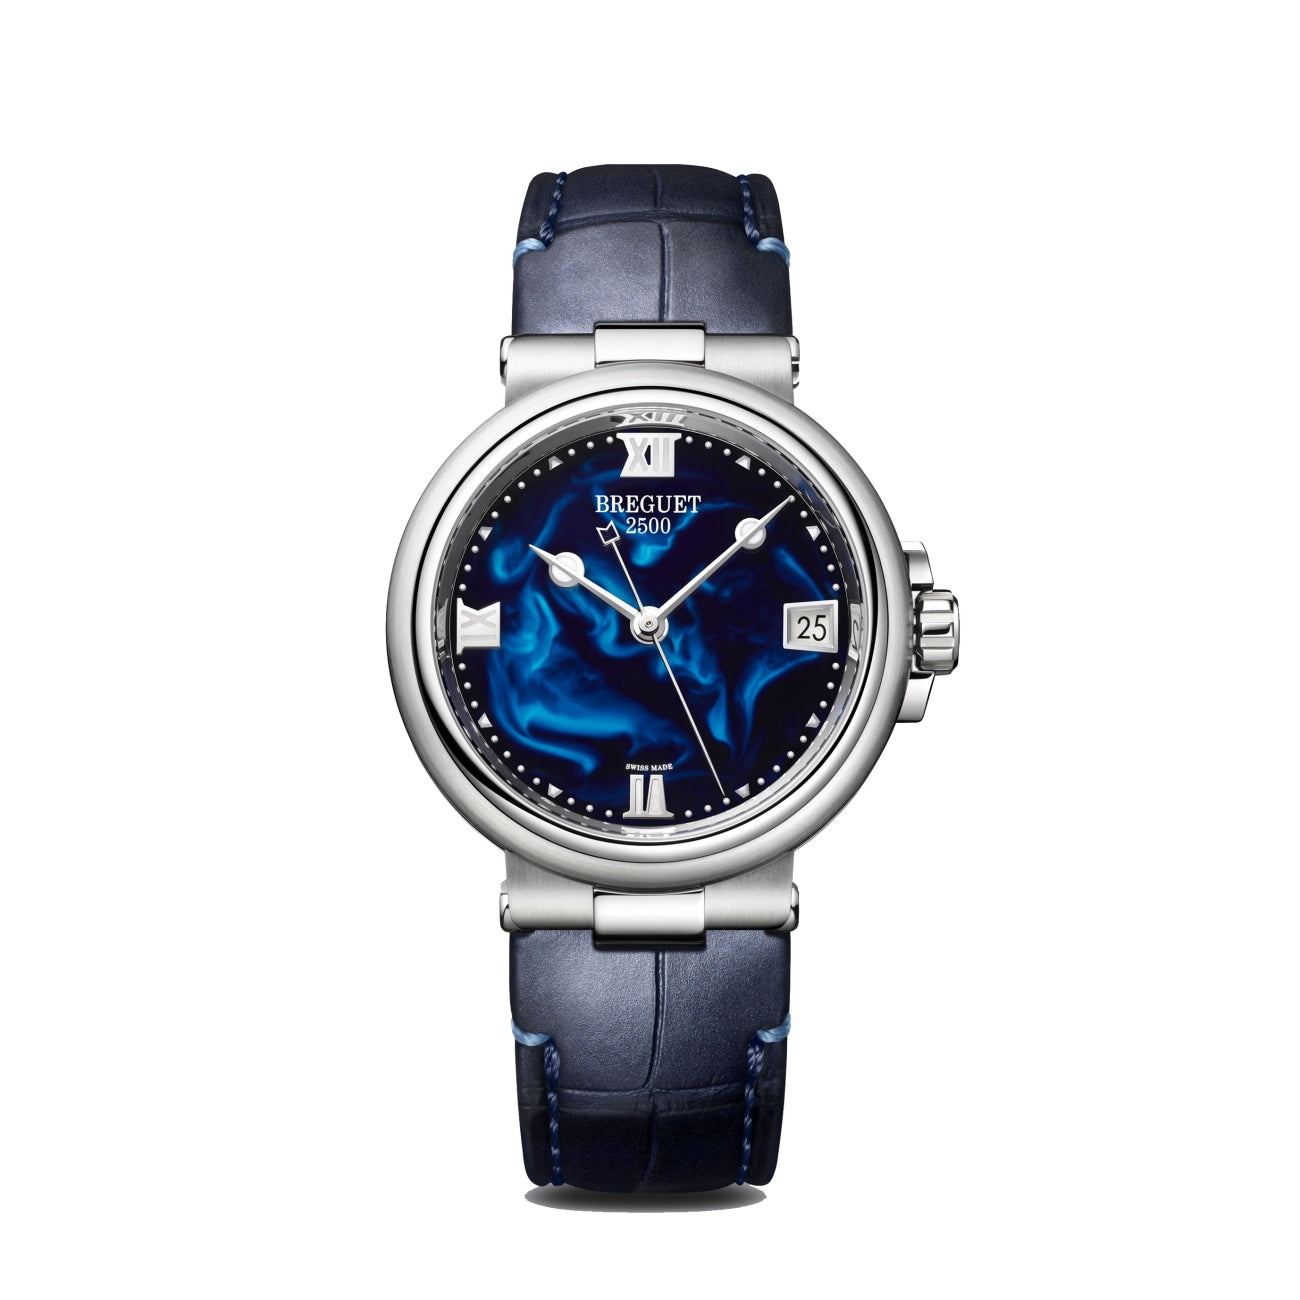 Breguet Watches - Marine Dame 9517 | Manfredi Jewels